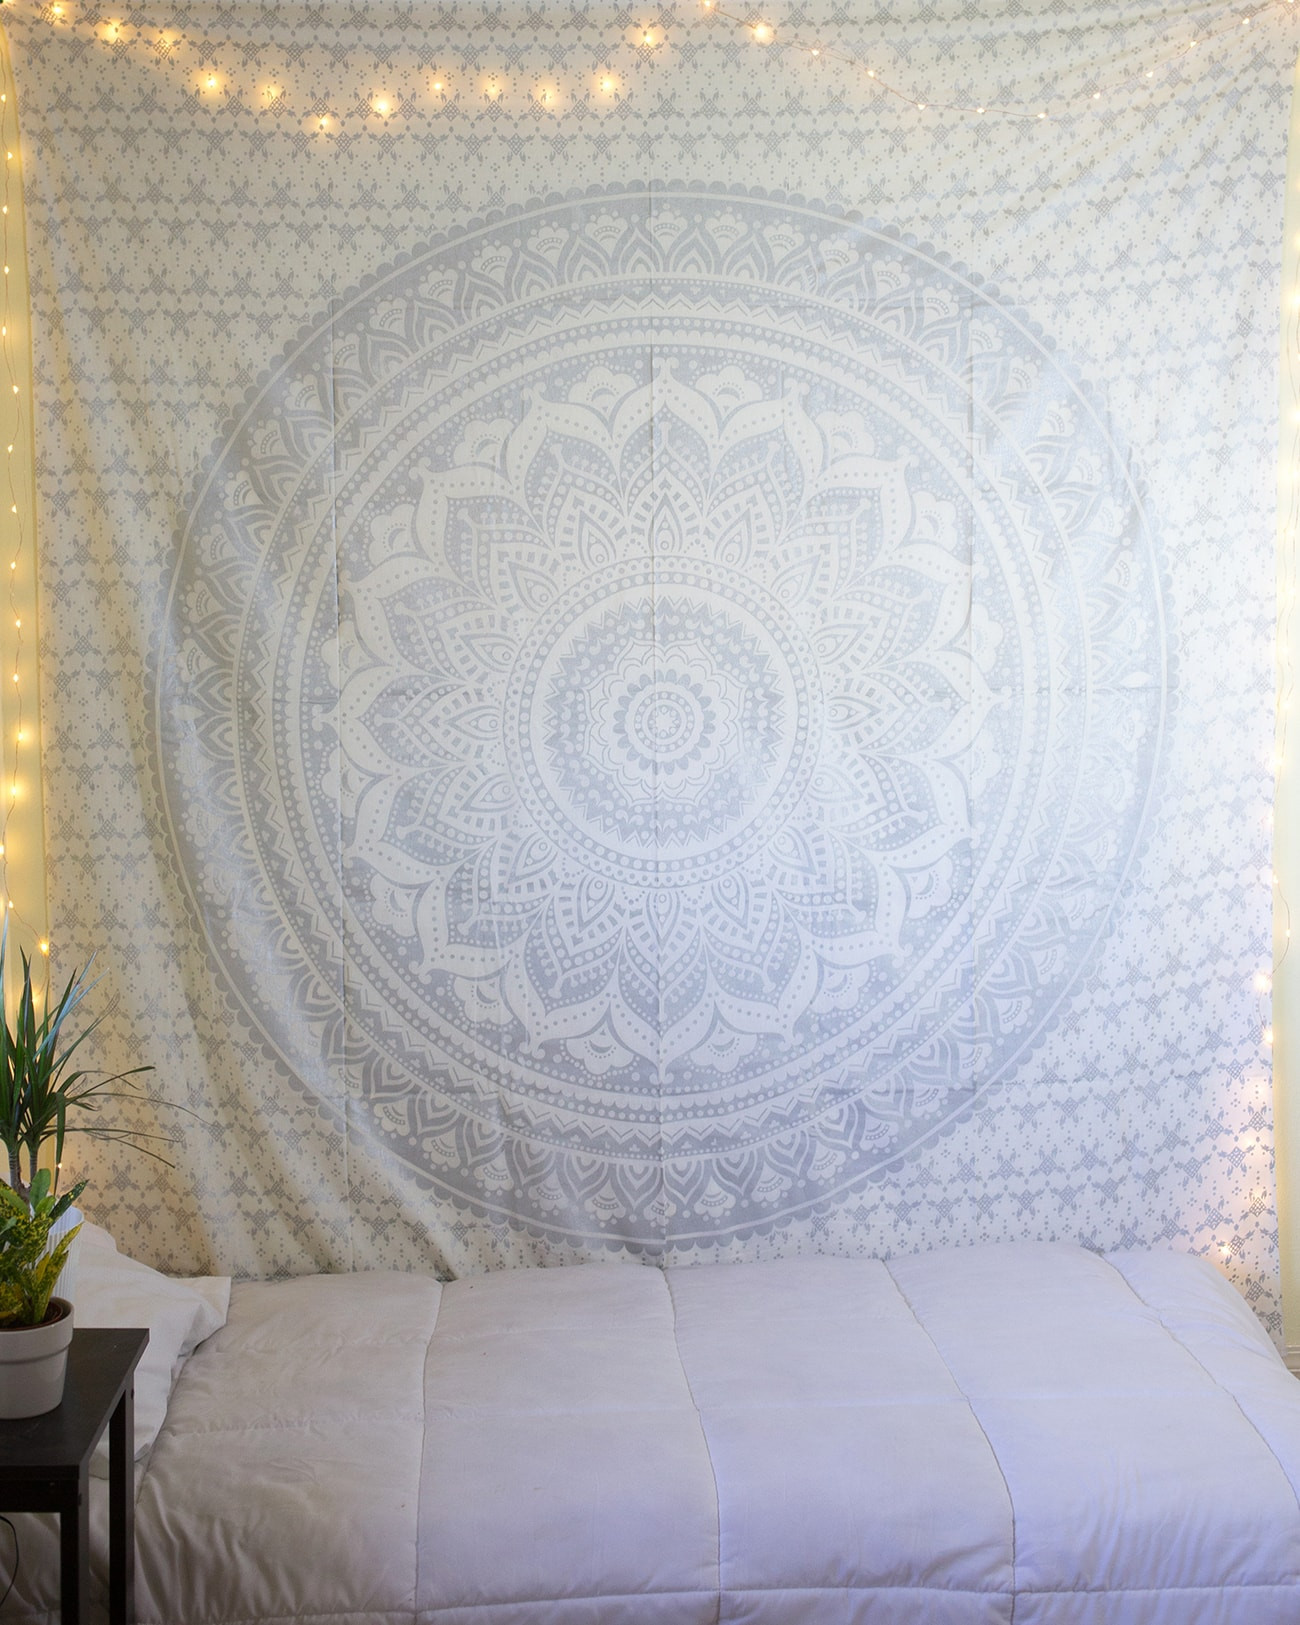 Twin Silver Glittering Color Floral Trippy Ombre Medallion Mandala Wall Tapestry - RoyalFurnish.com